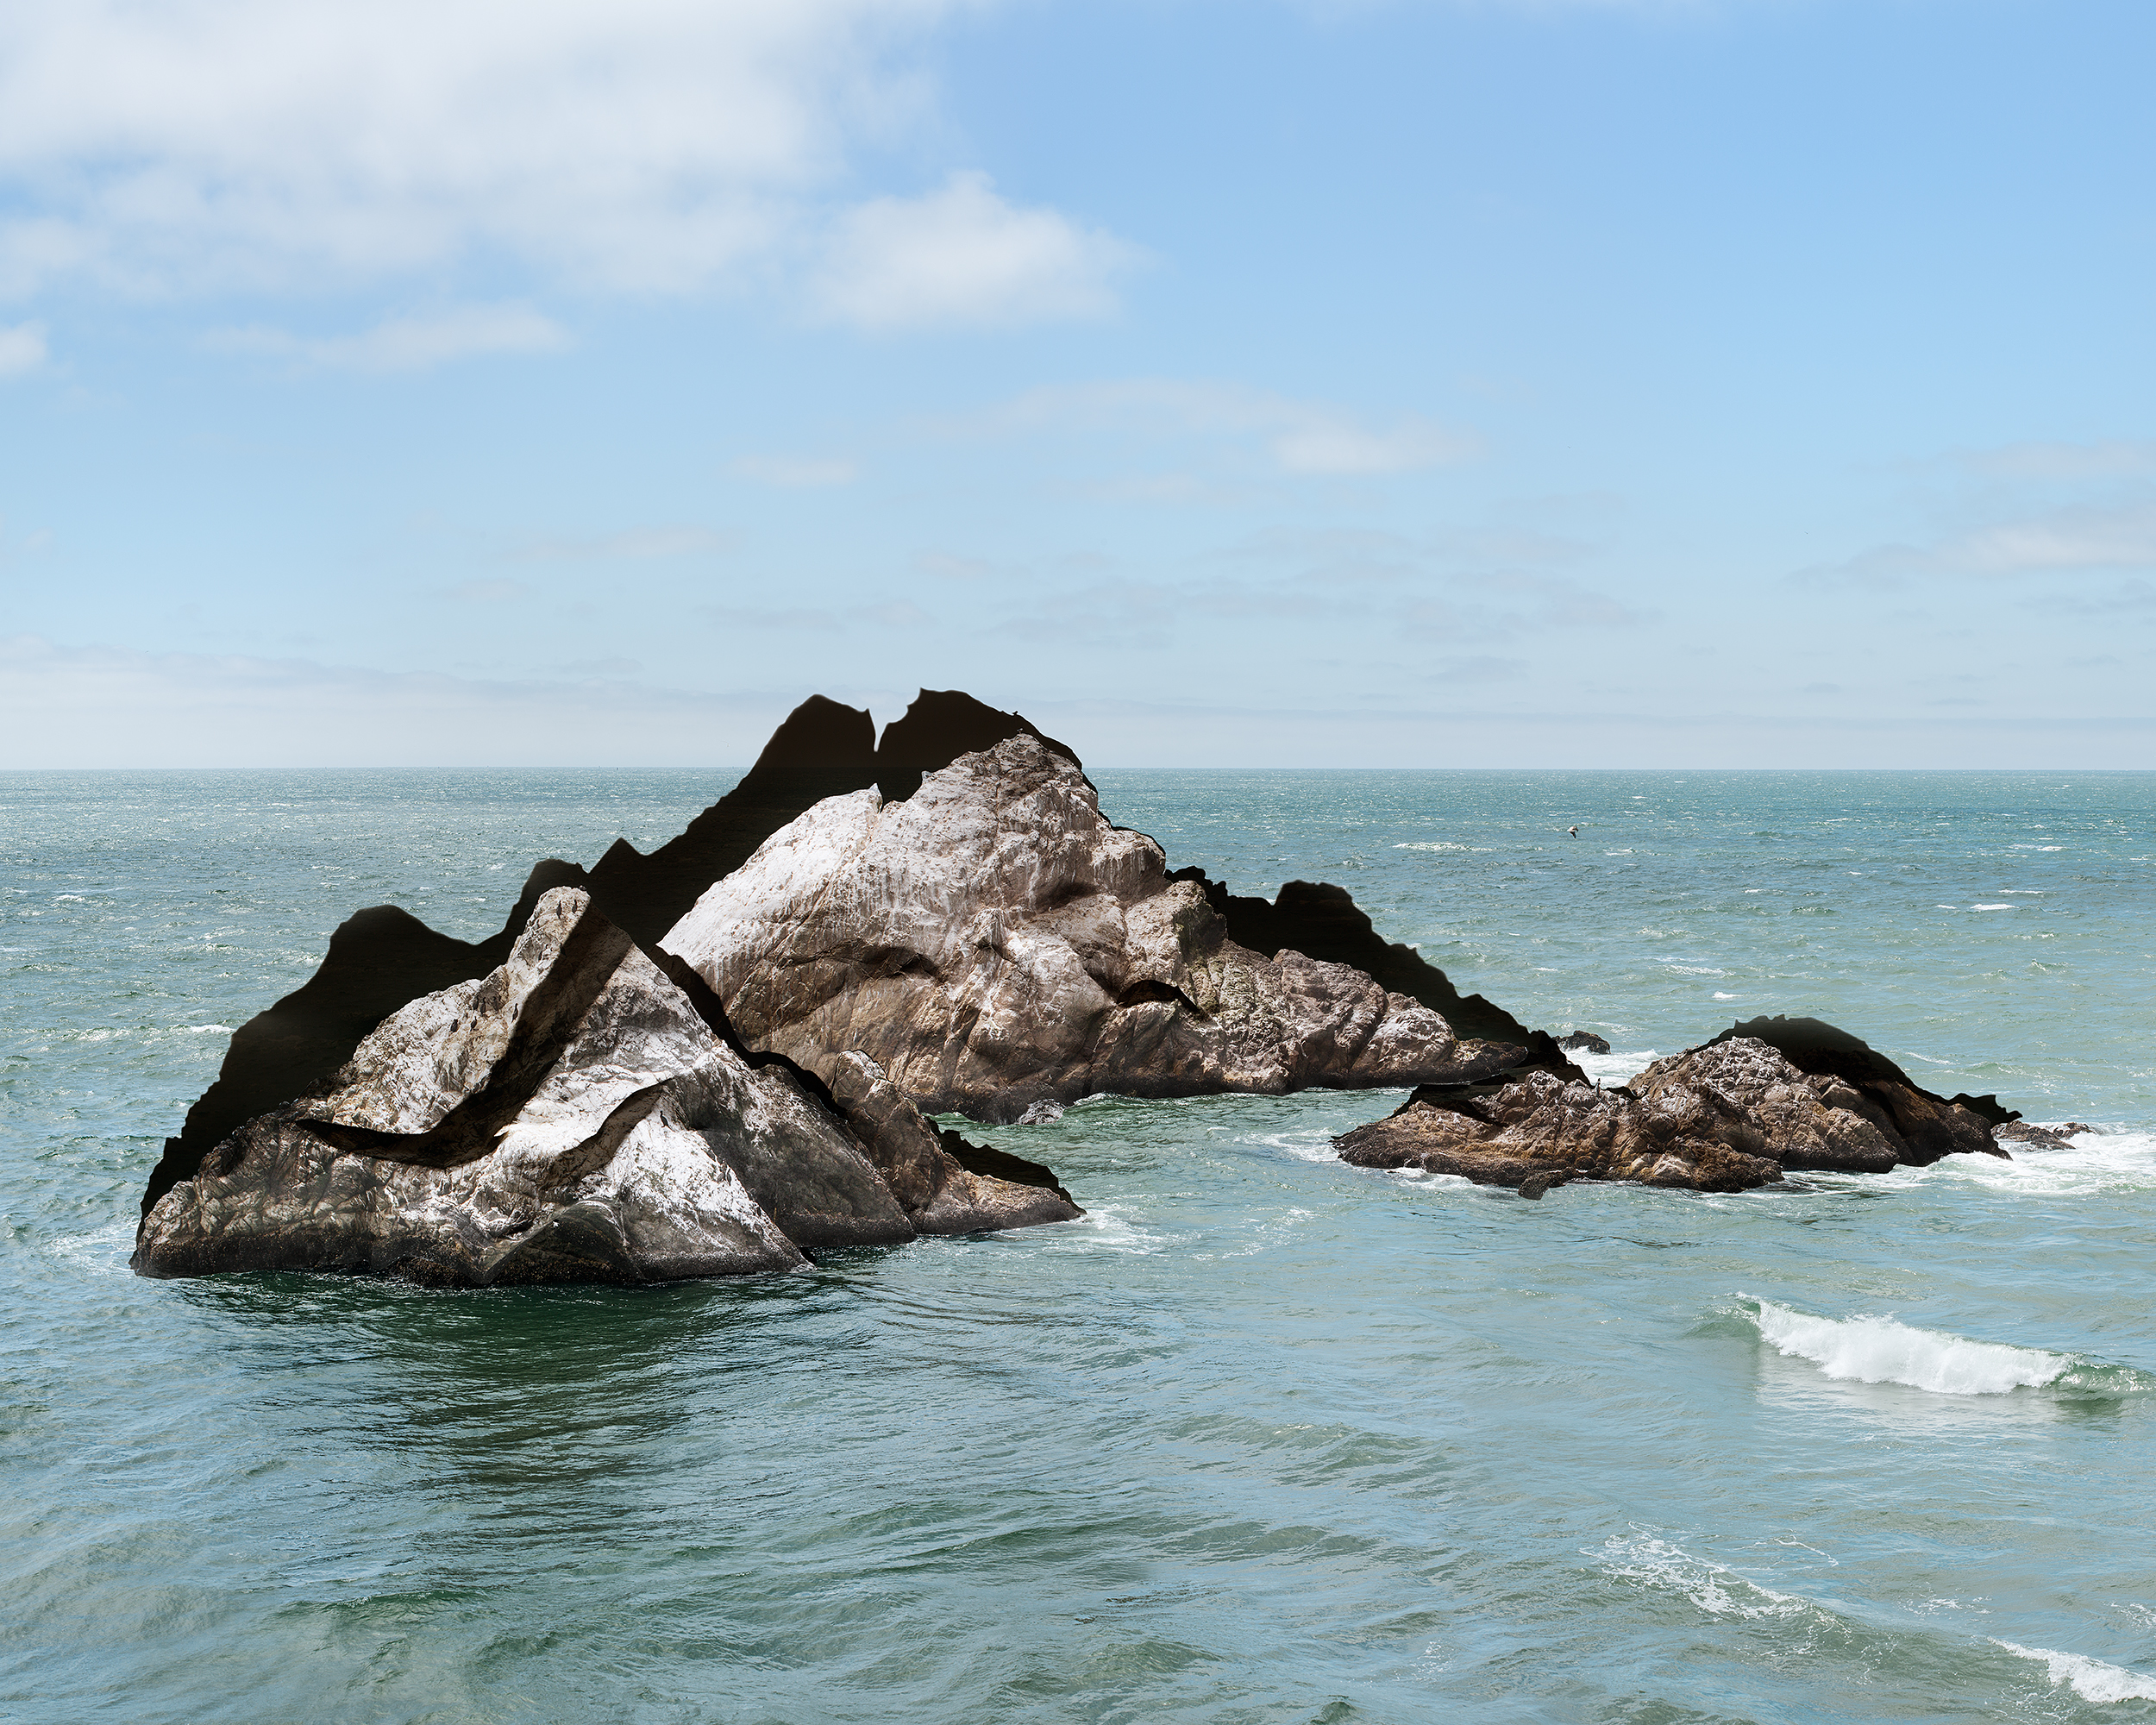 Laura Plageman,  Response to Print of Seal Rocks, California , 2014  Digital pigment print, 32 x 40 in, edition of 4; 20 x 25 in, edition of 5   Inquire